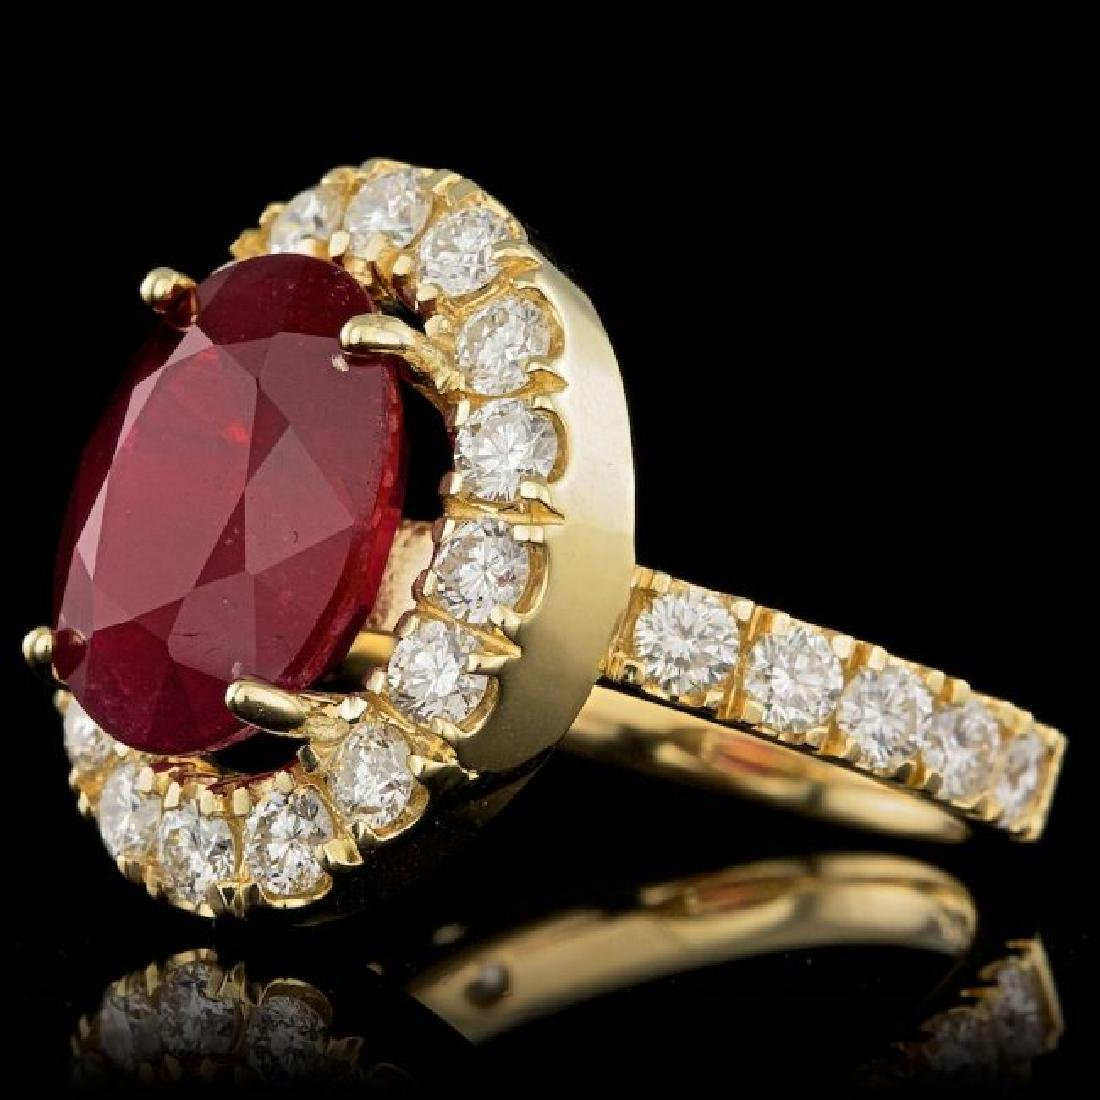 14k Yellow Gold 7.50ct Ruby 1.70ct Diamond Ring - 2